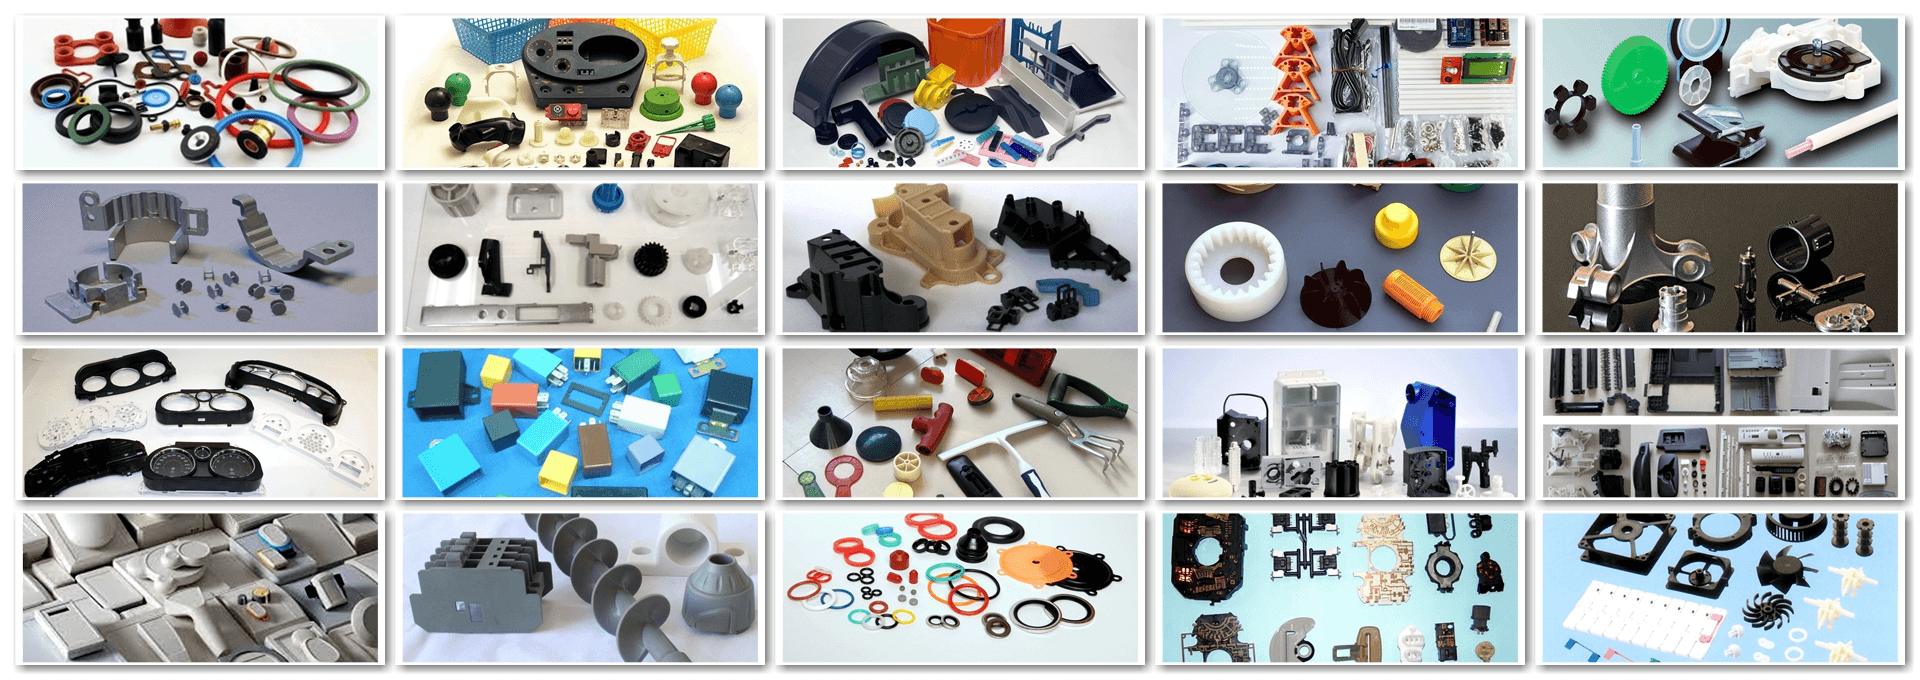 BATCH-TO-MASS PRODUCTION OF QUALITY PARTS